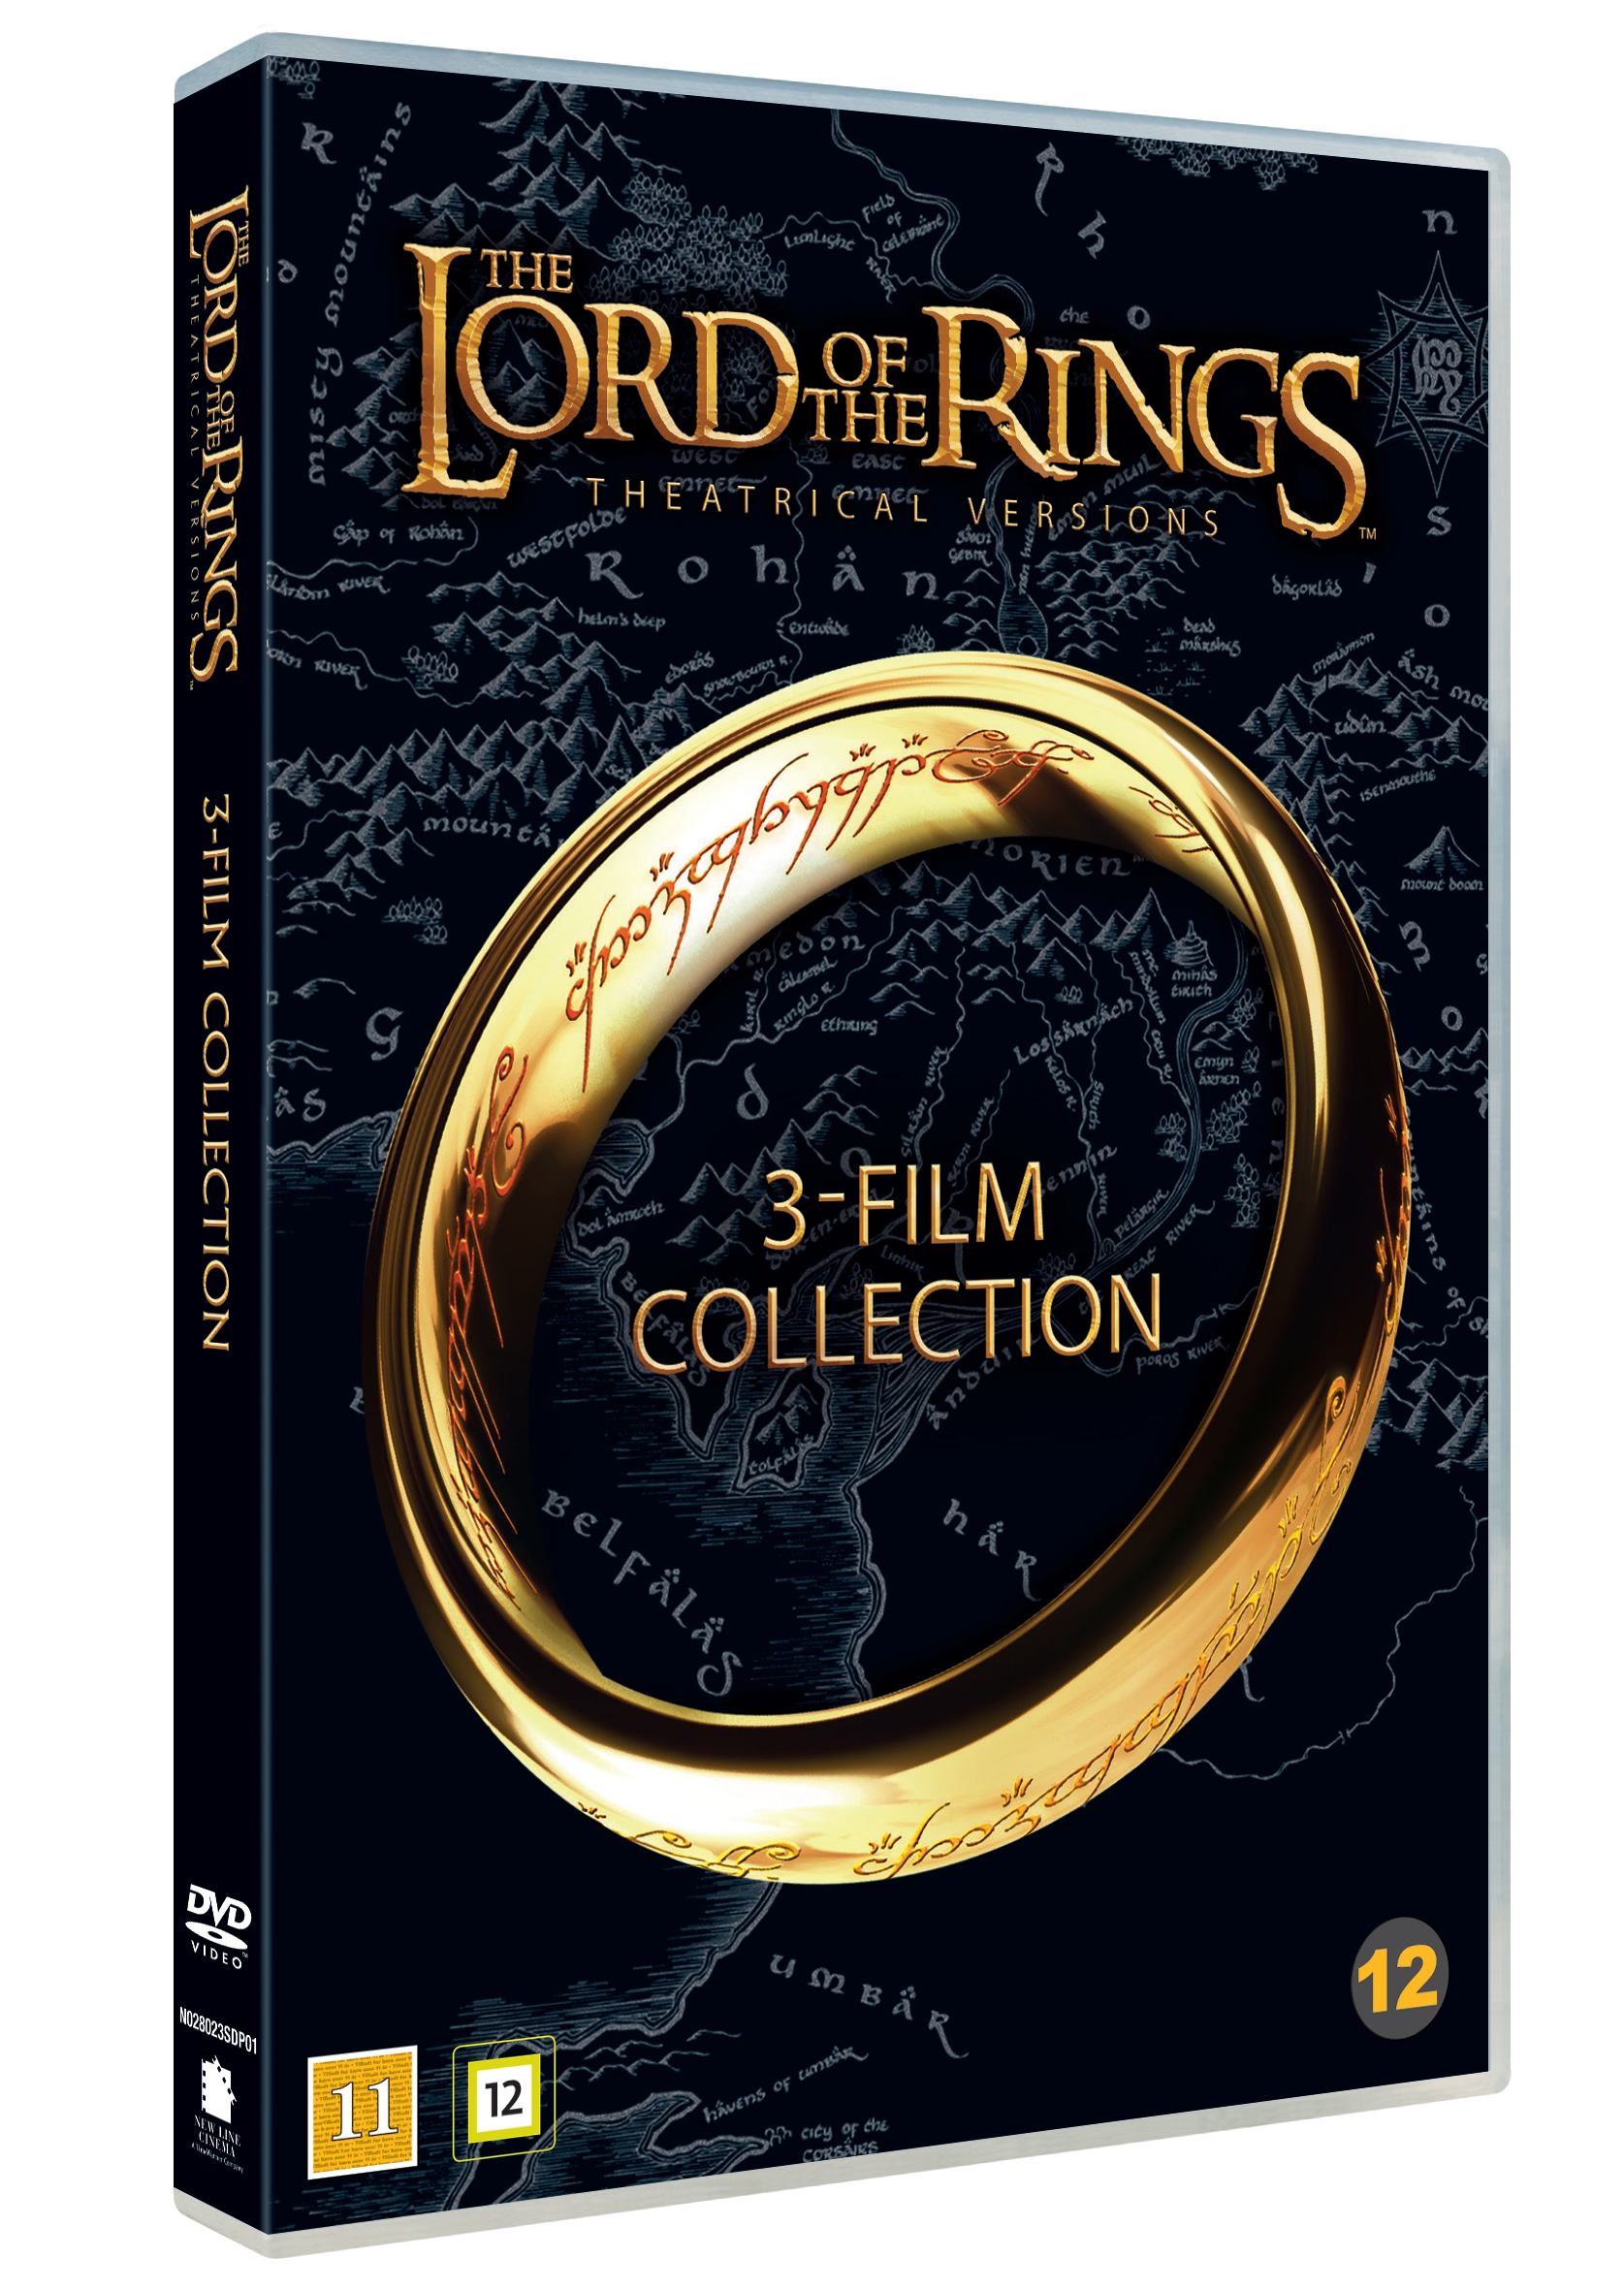 Lord of the rings trilogy (theatrical cut) - DVD